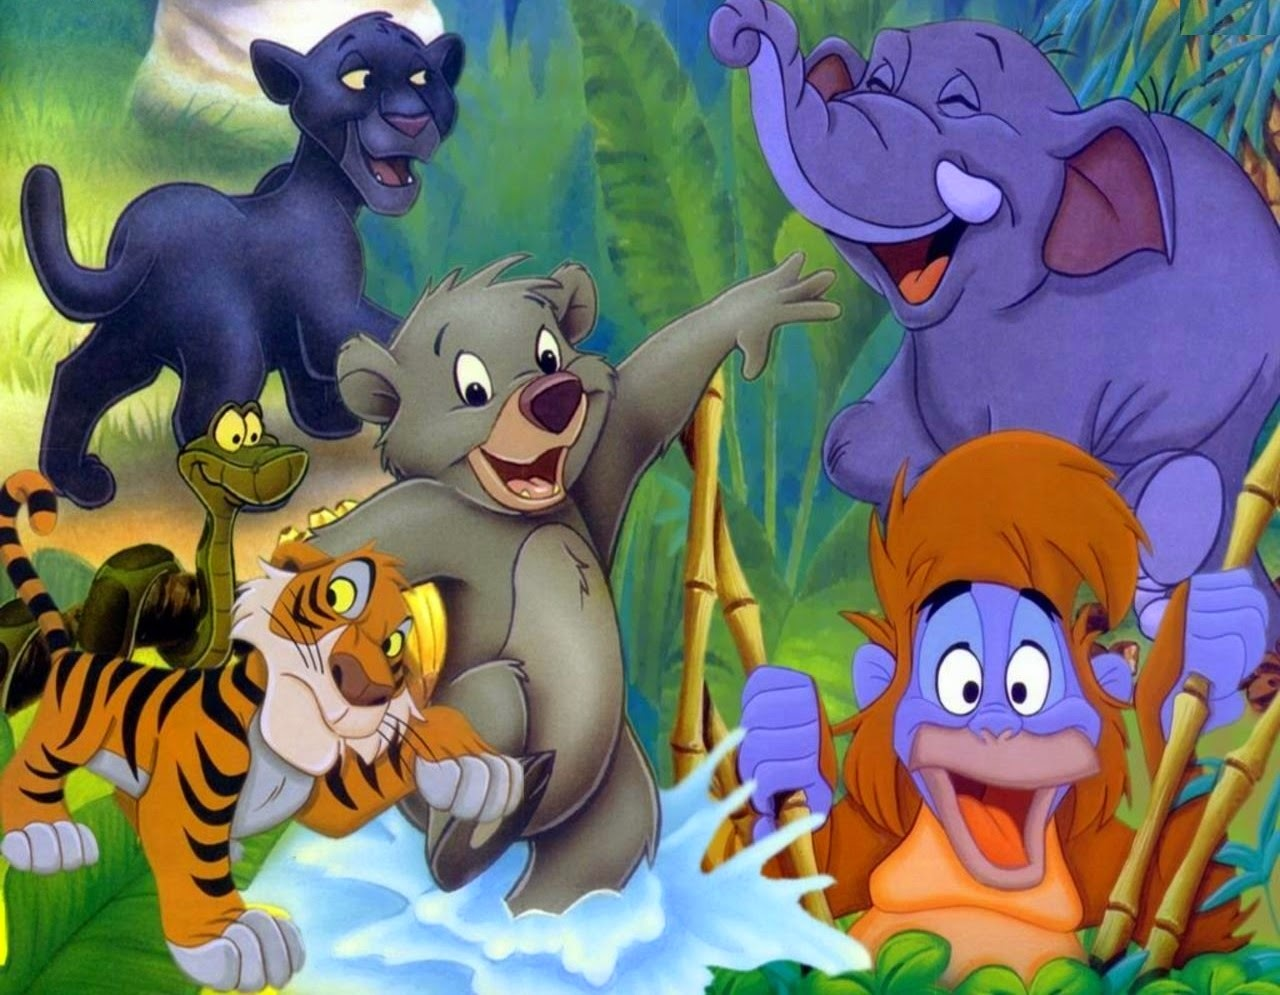 Jungle-book-widescreen-high-definition-wallpaper-download-cartoon-images-free